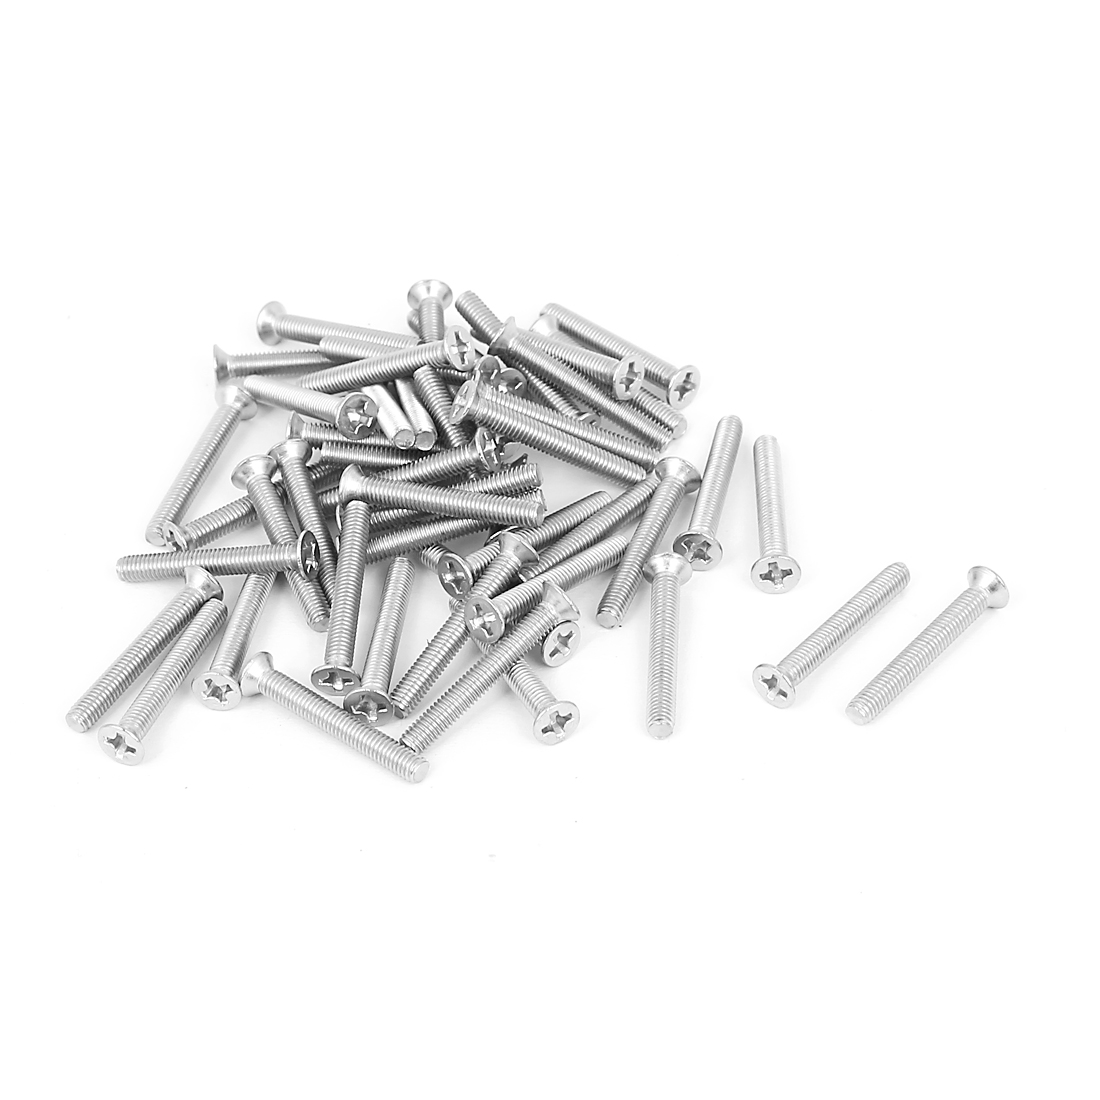 M3x22mm Stainless Steel Phillips Flat Countersunk Head Screws 50pcs